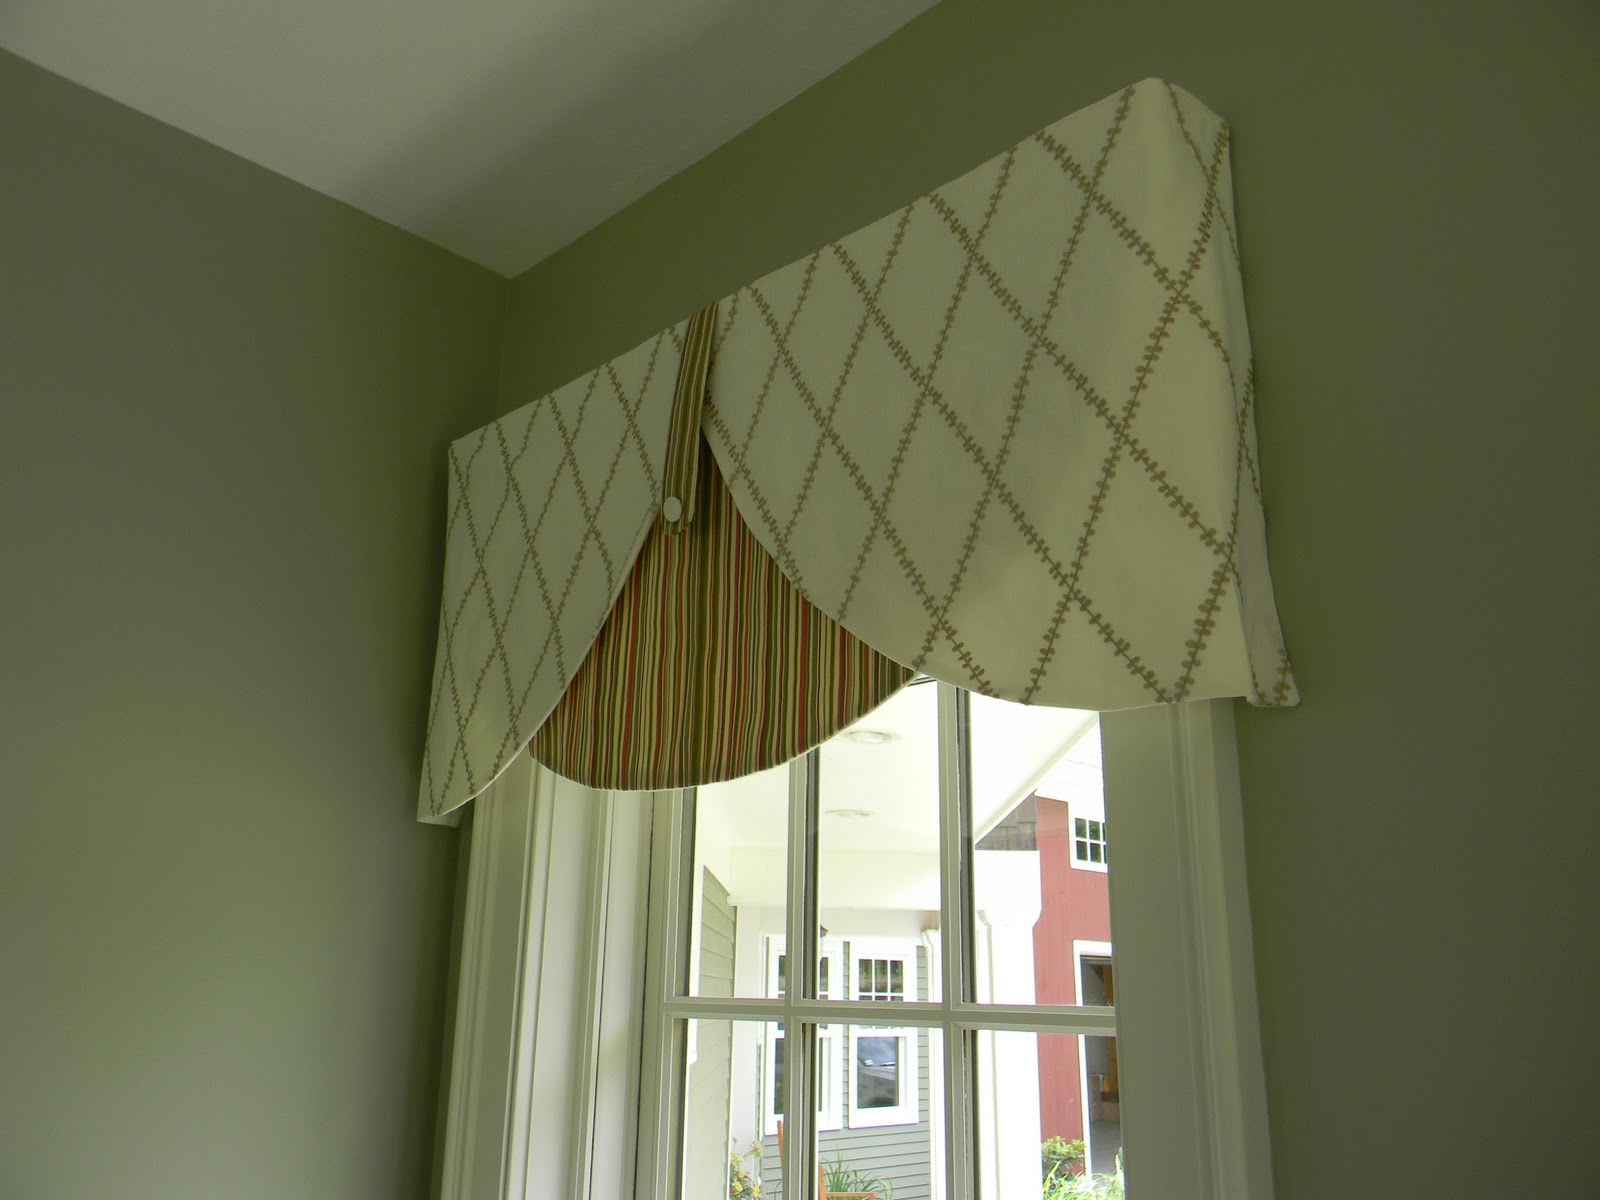 two fabrics contrasting patterns and shapes enhance details of the room valance styles - Valance Design Ideas